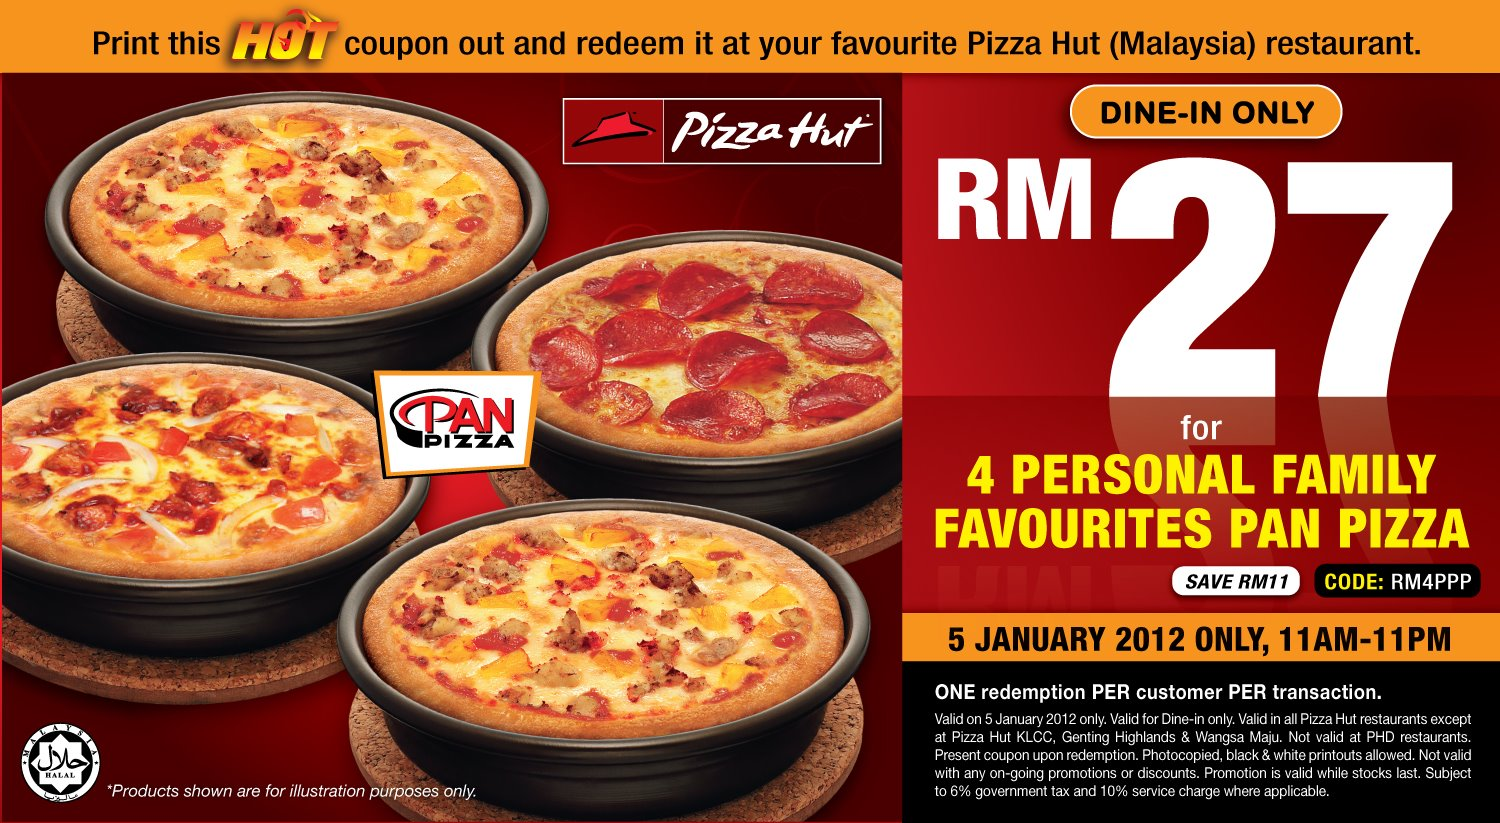 Pizza Hut Hot Coupon 4 Personal Family Favourites Pan Pizza Rm27